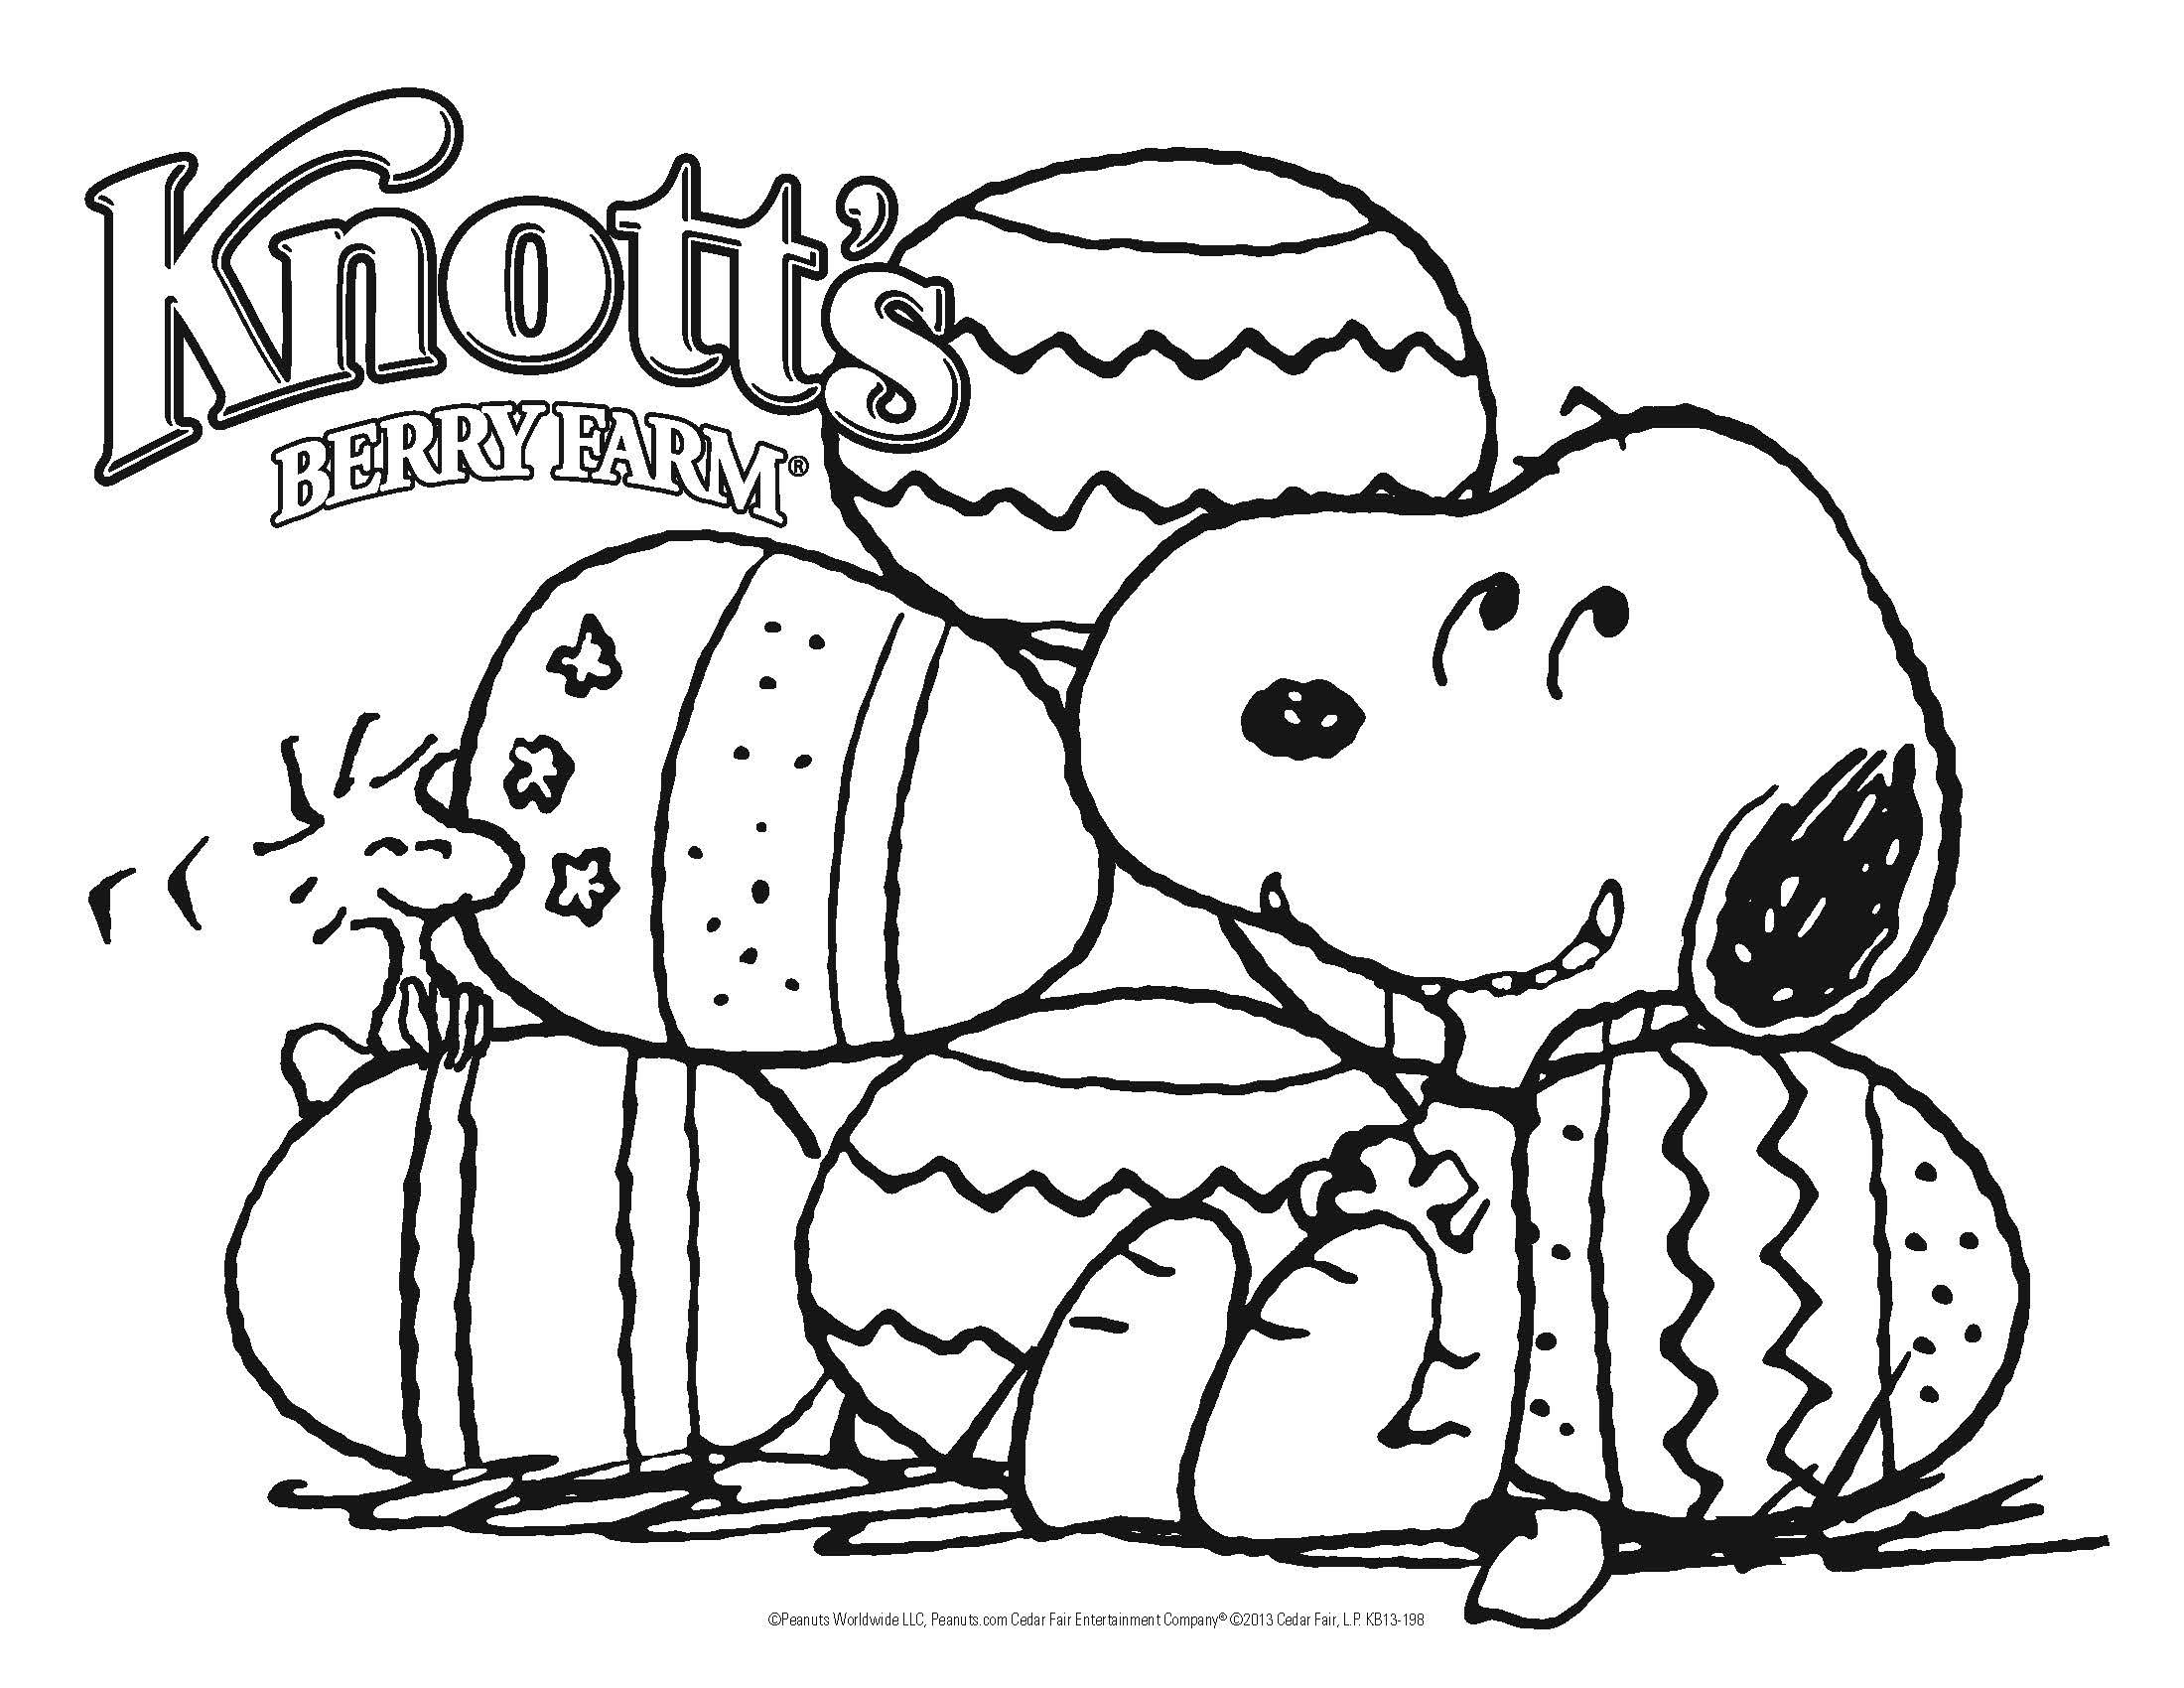 Pin by Robin Freed on Easter | Snoopy coloring pages ...